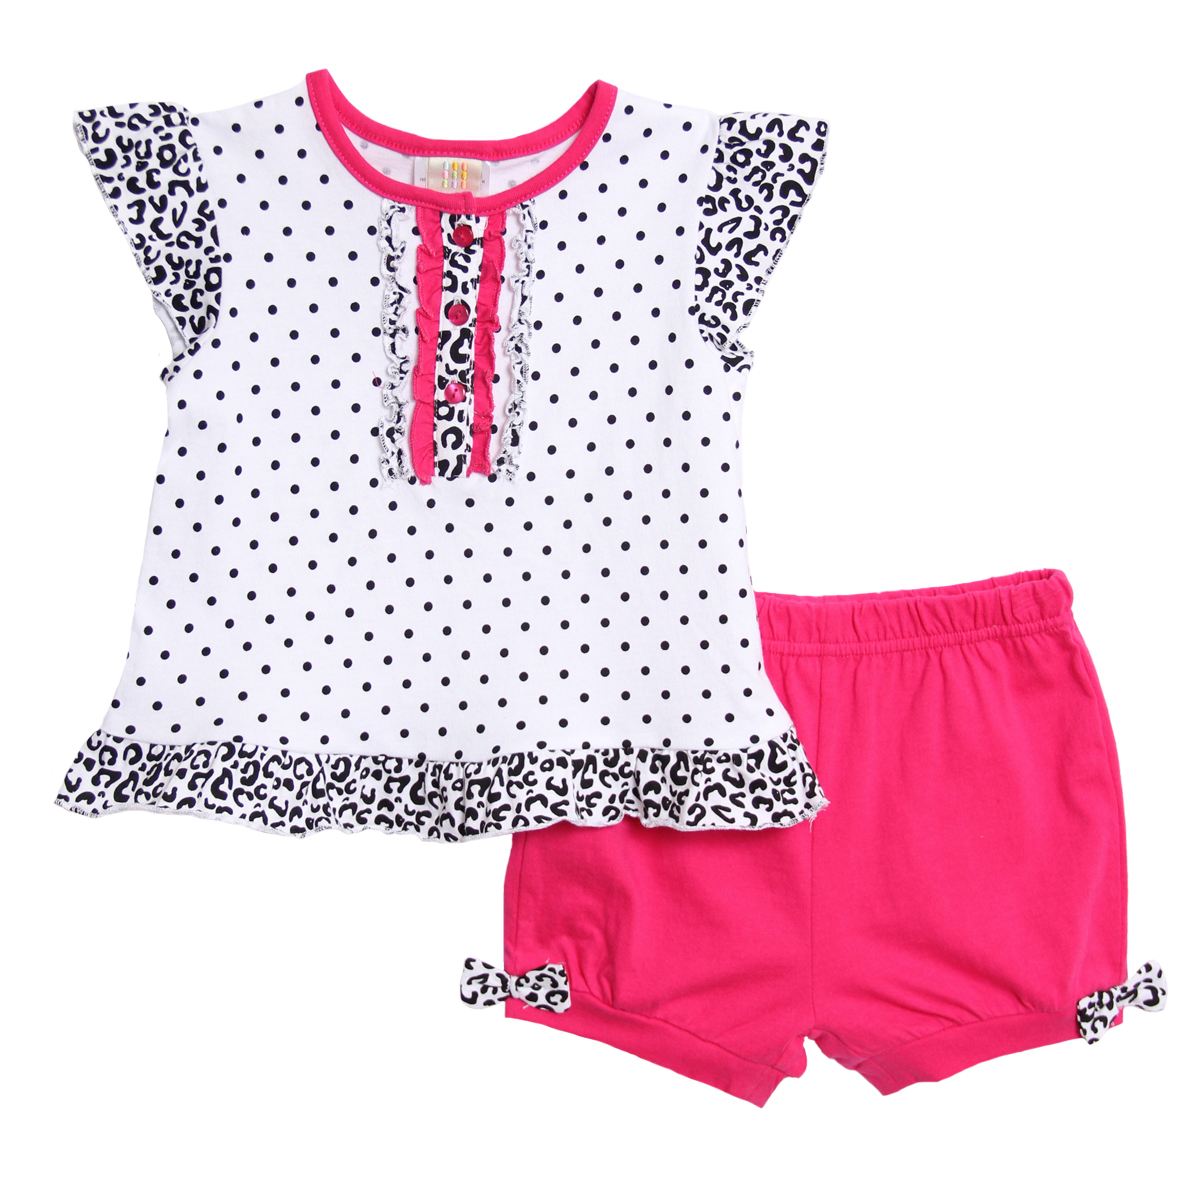 Absorba Infant Baby Girls 2 Piece Hot Pink Black Polka Dot Leopard Top Shorts at Sears.com